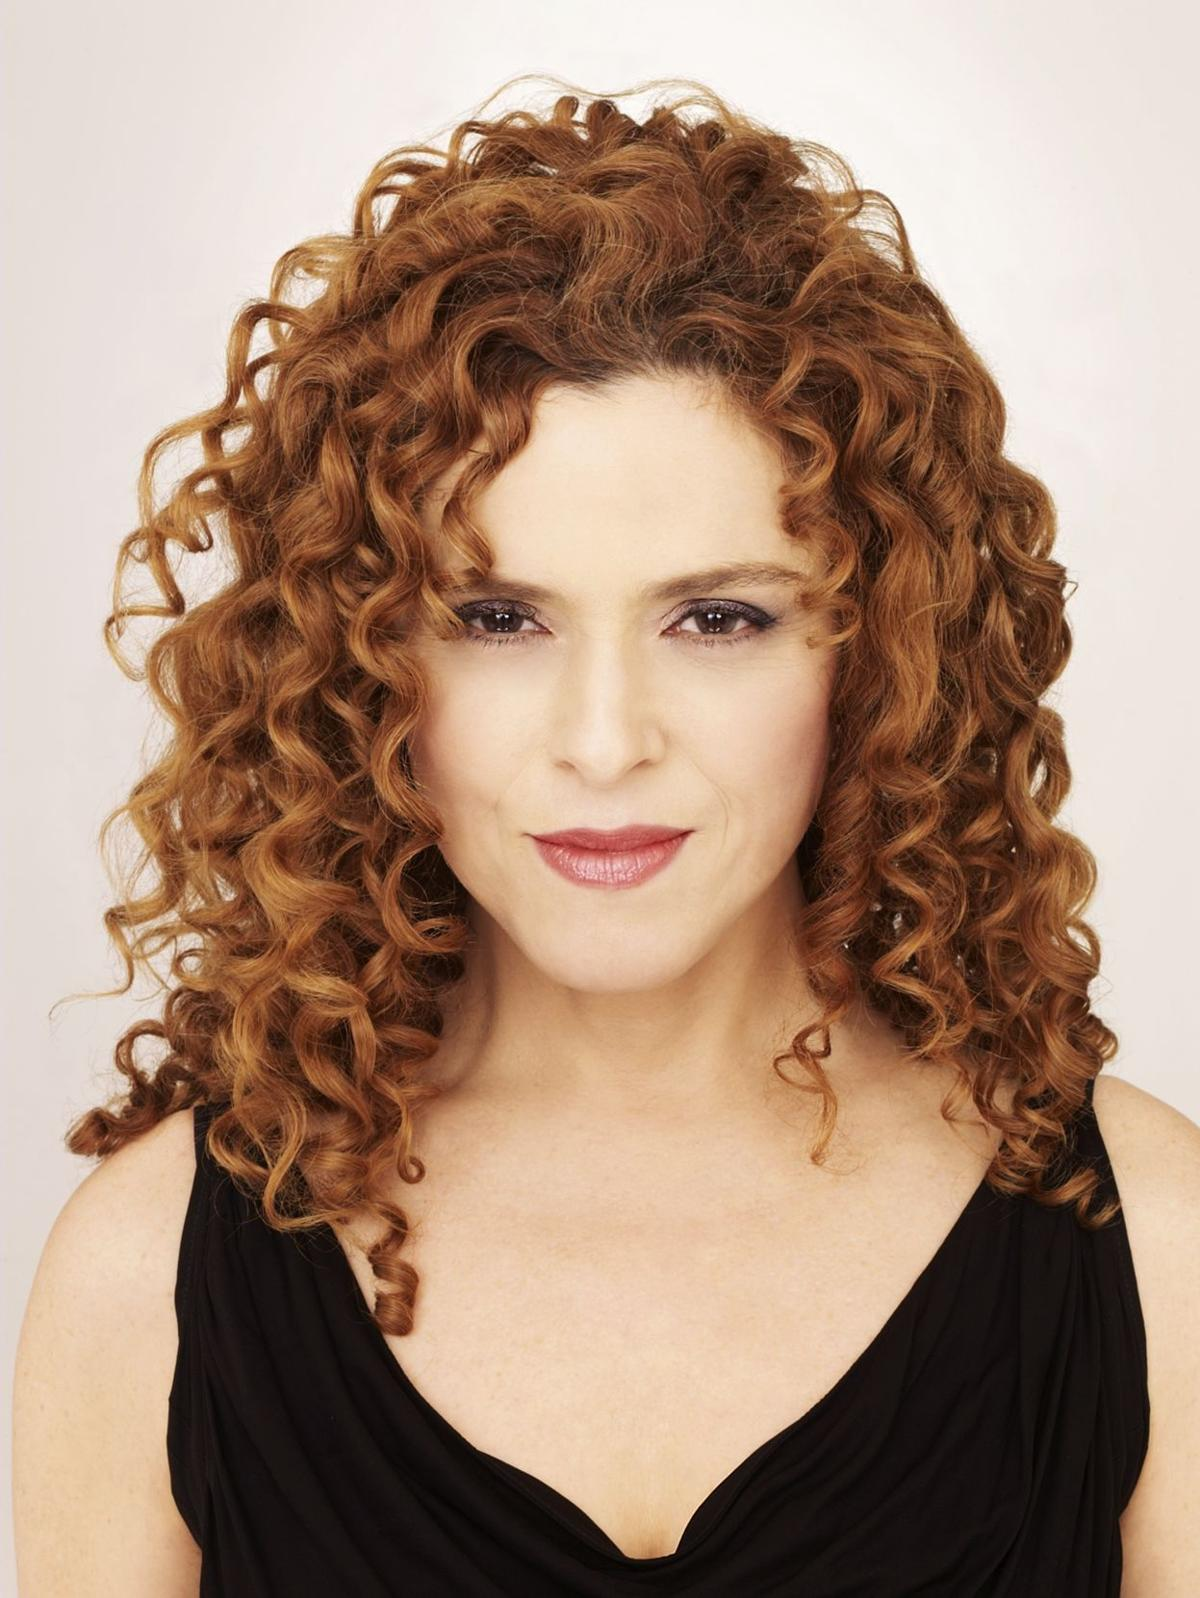 Bernadette Peters Nude Photos 83